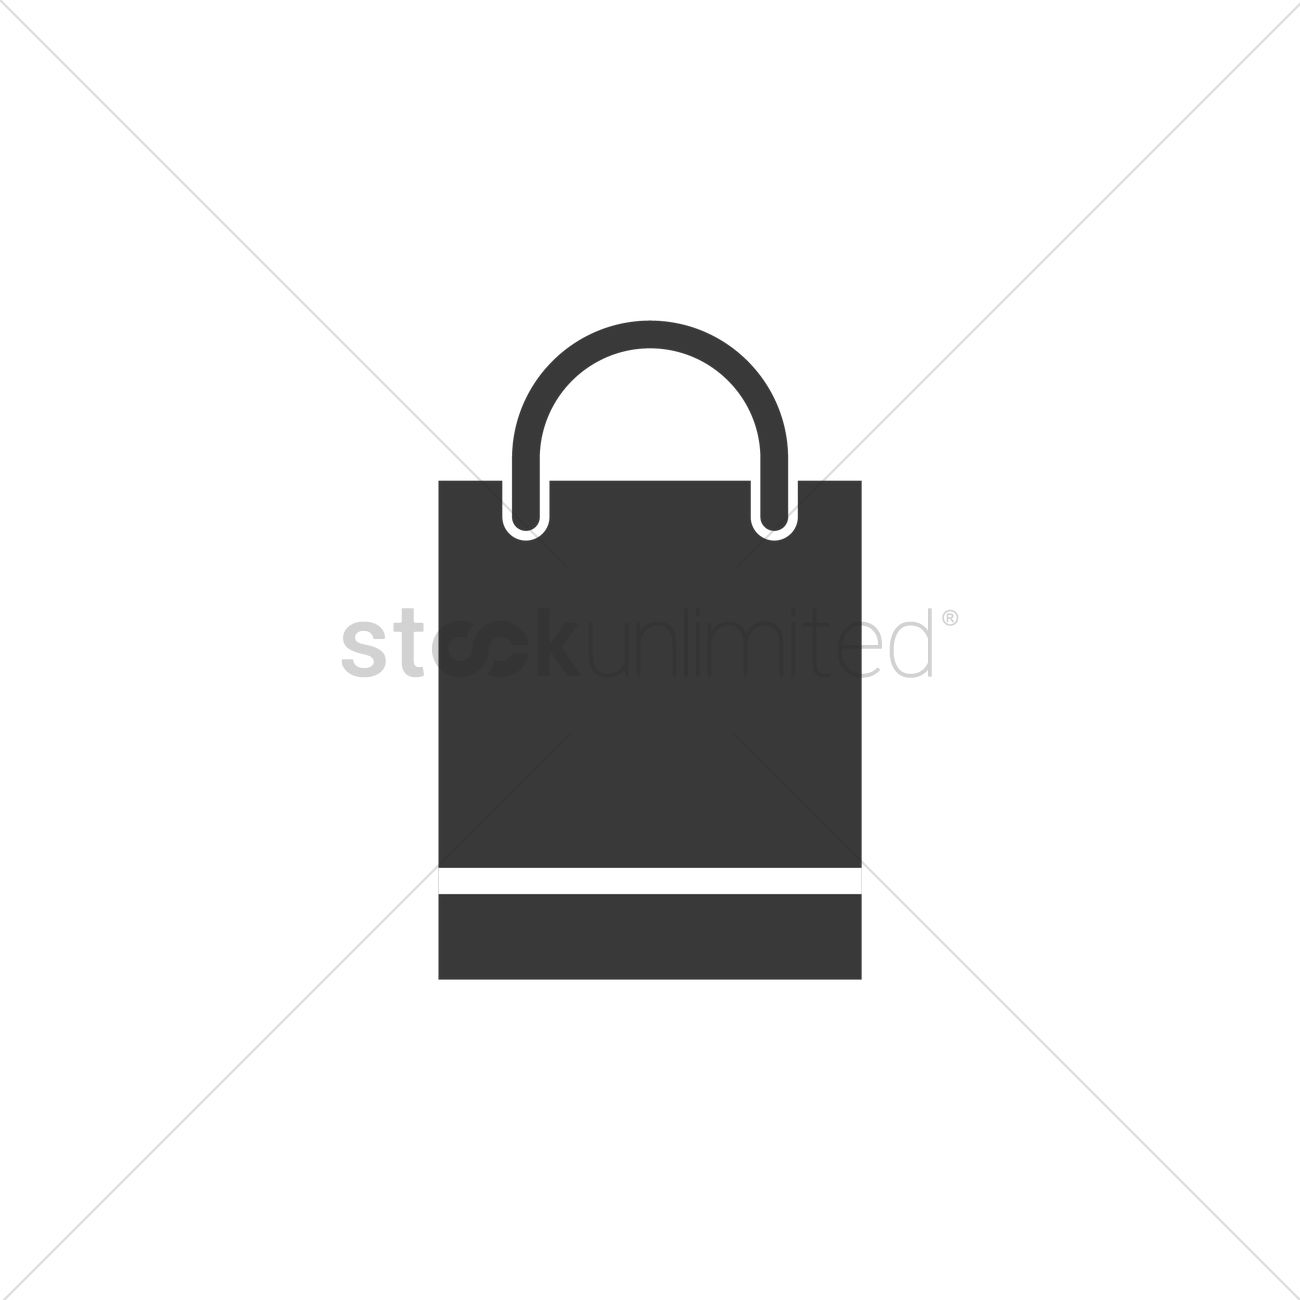 shopping bag vector image 1591648 stockunlimited shopping bag vector image 1591648